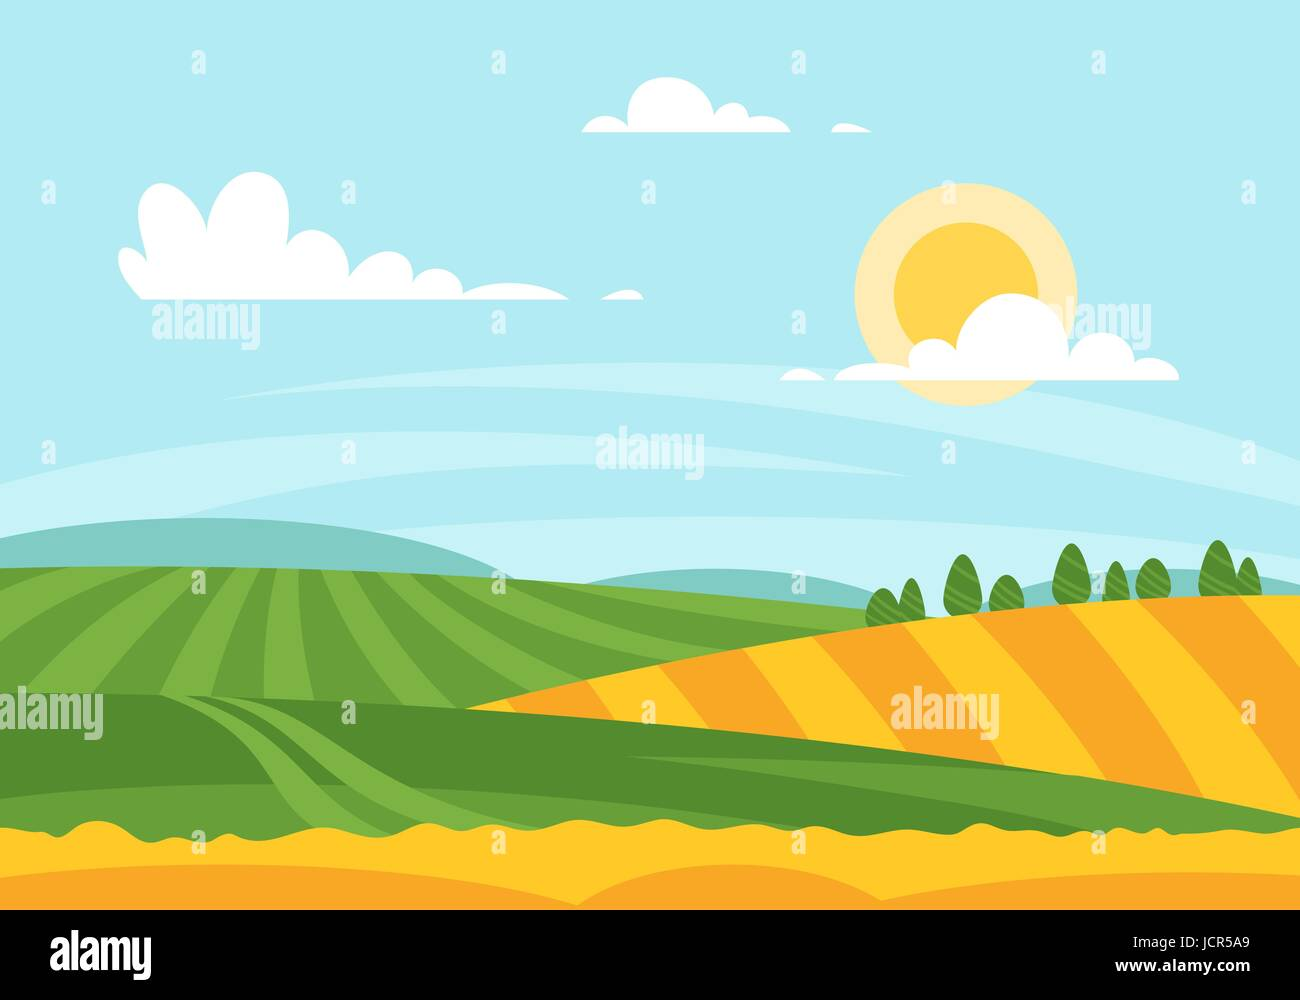 Vector cartoon style illustration of wheat field in a daytime. Sunny day background. - Stock Vector